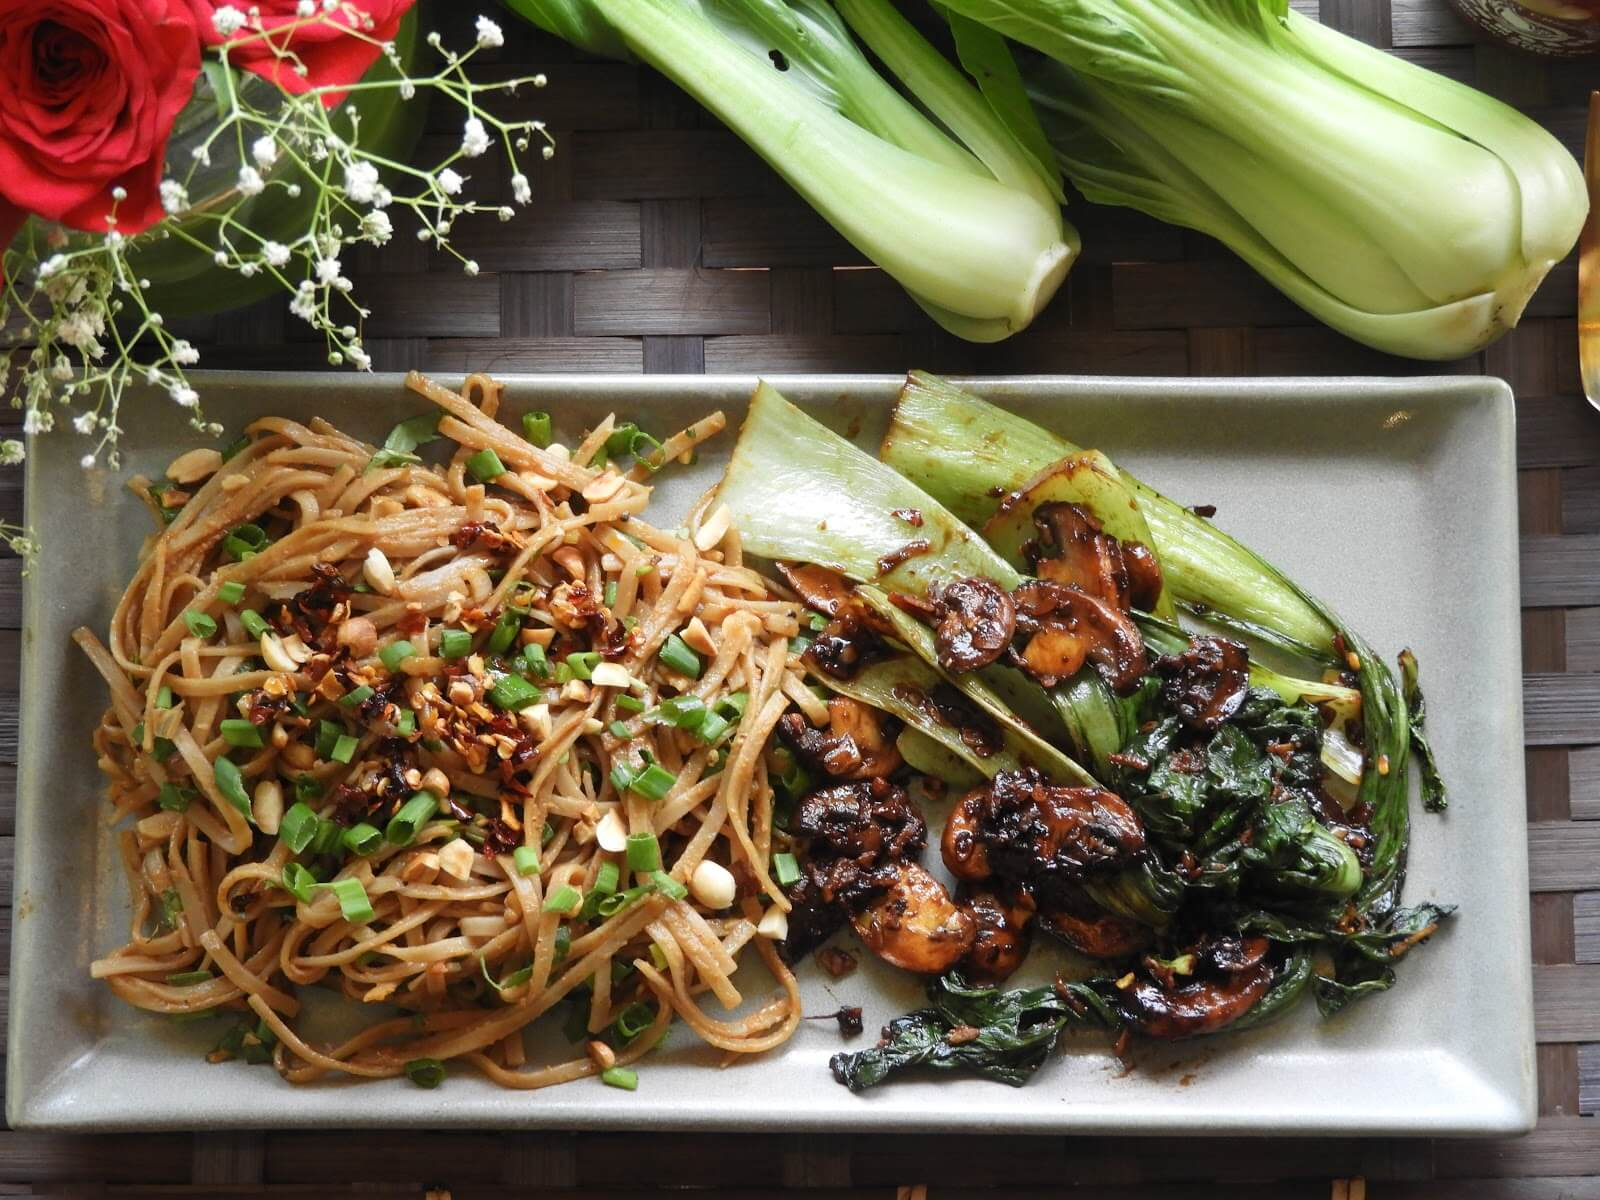 Spicy Bok Choy Mushrooms with Garlic Soba Noodles - Thai recipe at Kitchen by Nidhi